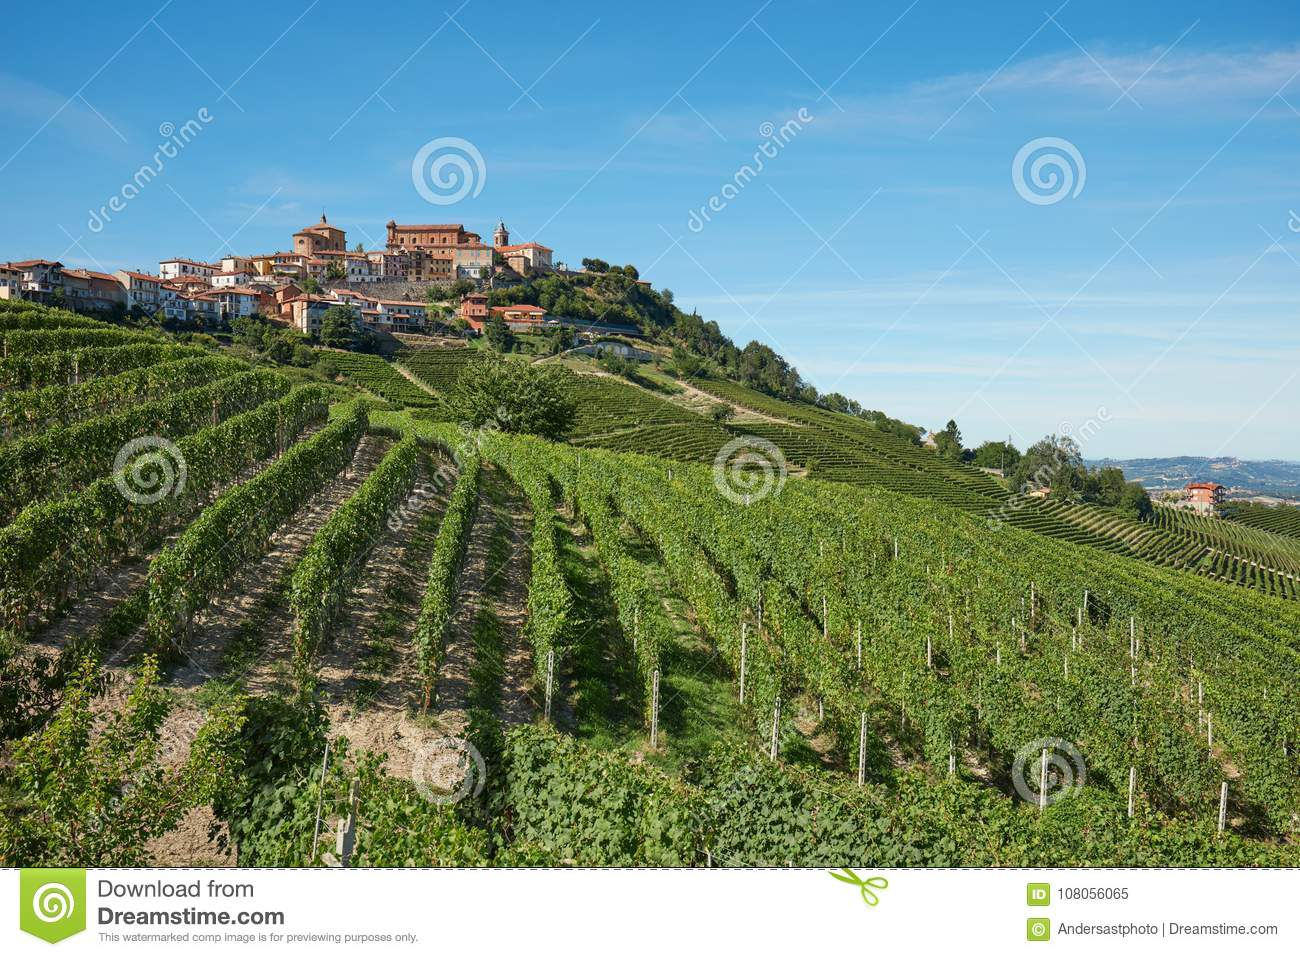 la morra town in piedmont, langhe hills with vineyards in italy